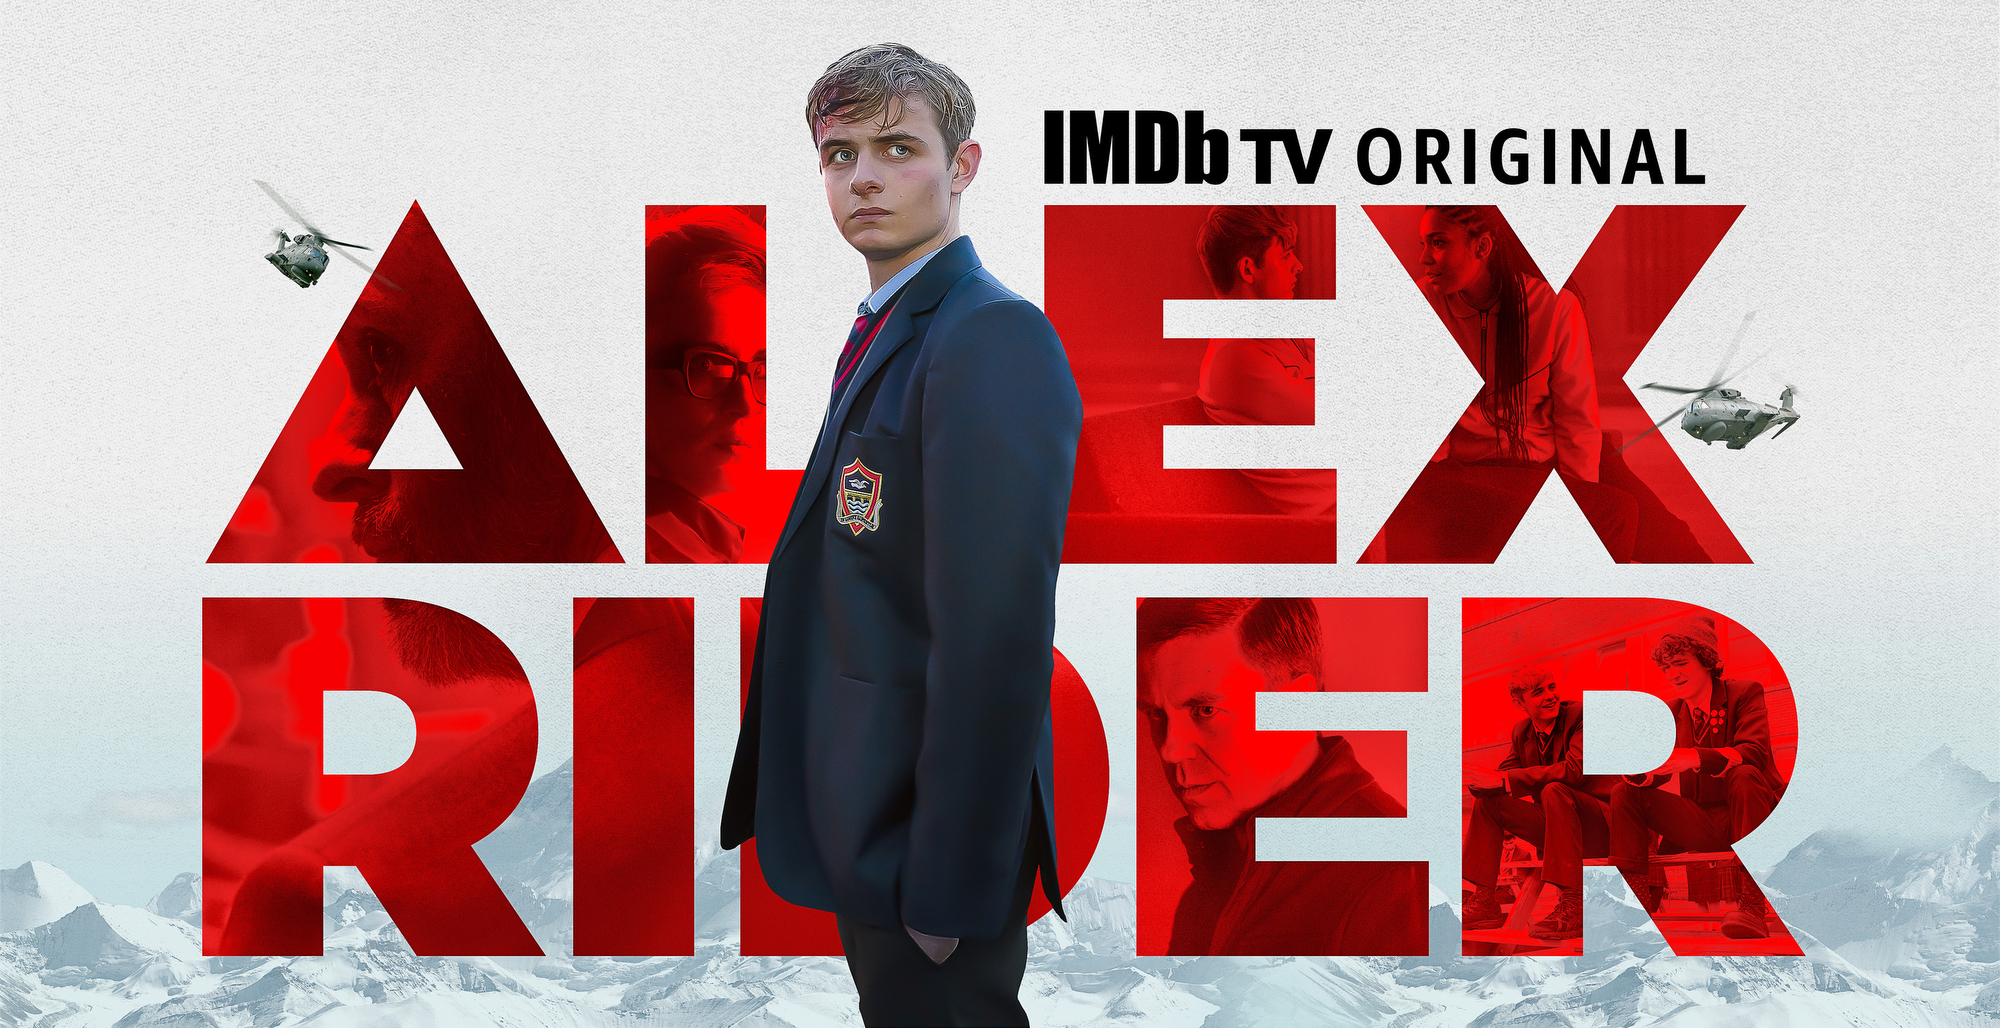 Alex Rider Season 2: Release Date, Cast, Synopsis and More